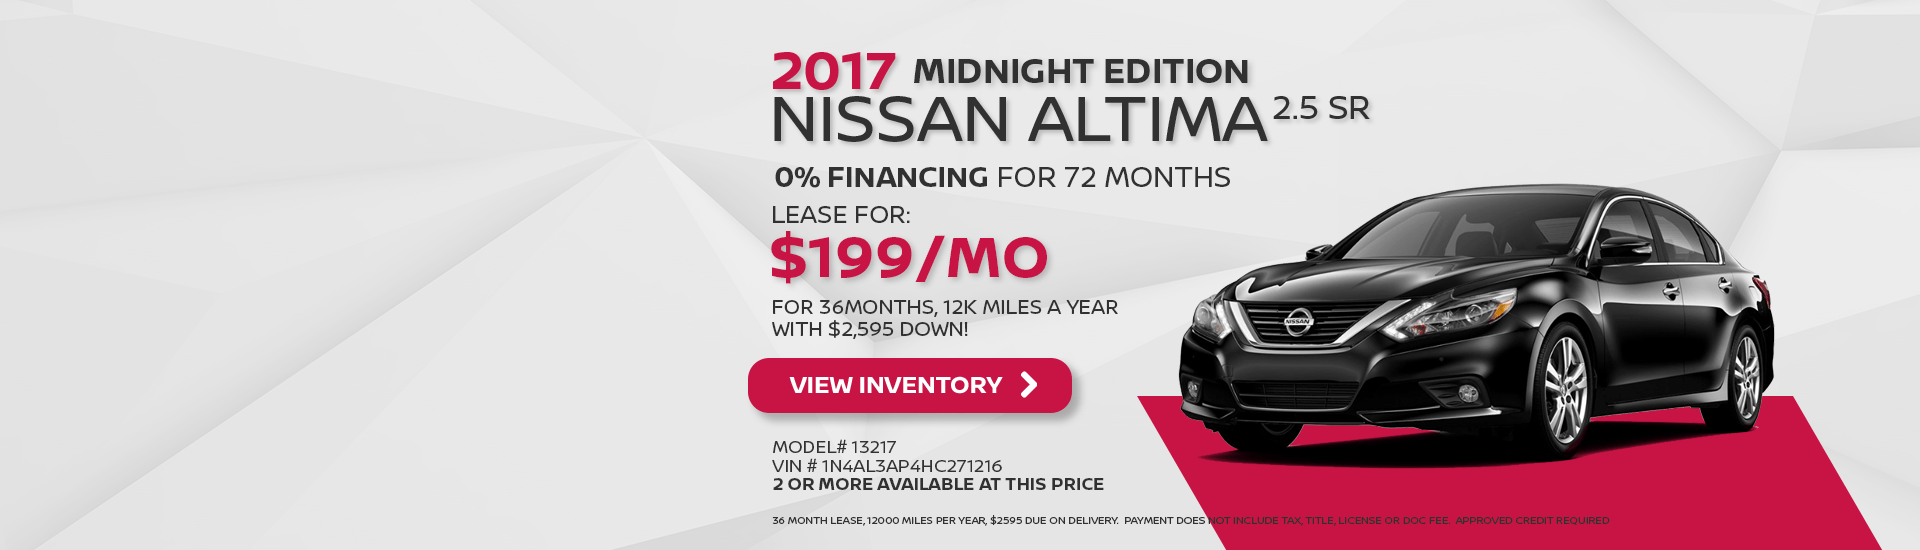 2017 Altima Midnight Edition Special